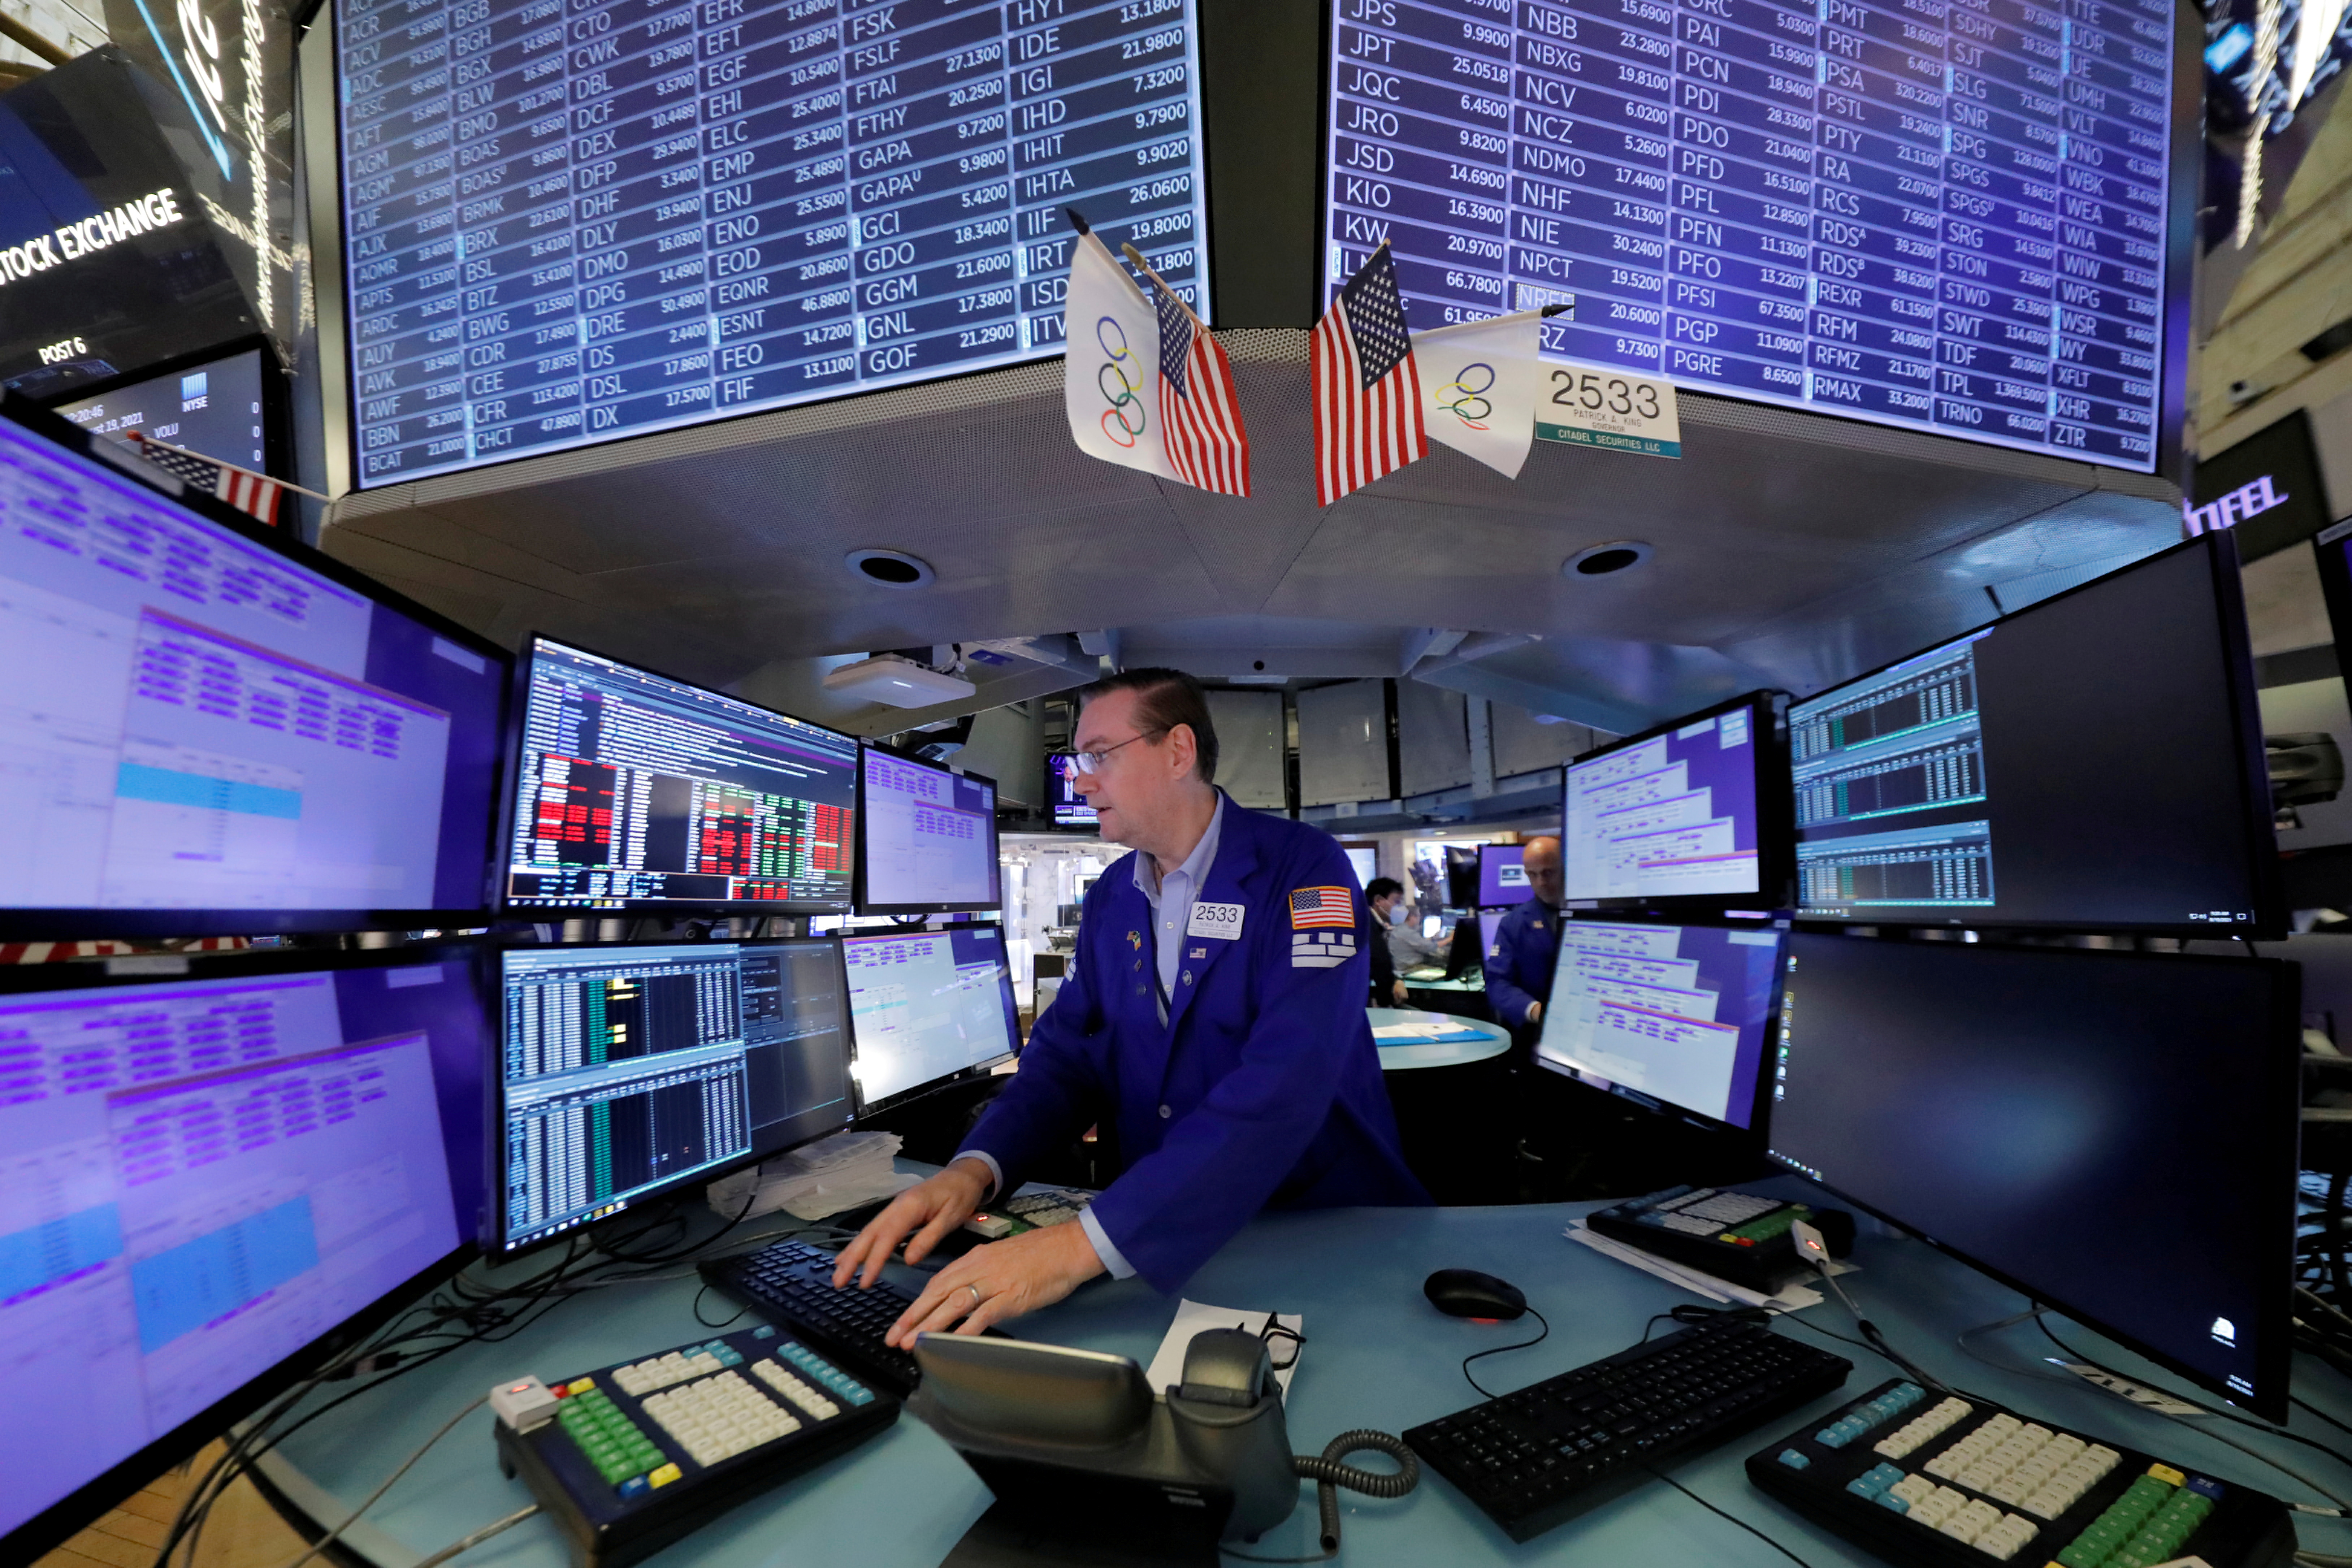 A trader works at the New York Stock Exchange (NYSE) in Manhattan, New York City, U.S., August 19, 2021. REUTERS/Andrew Kelly/File Photo